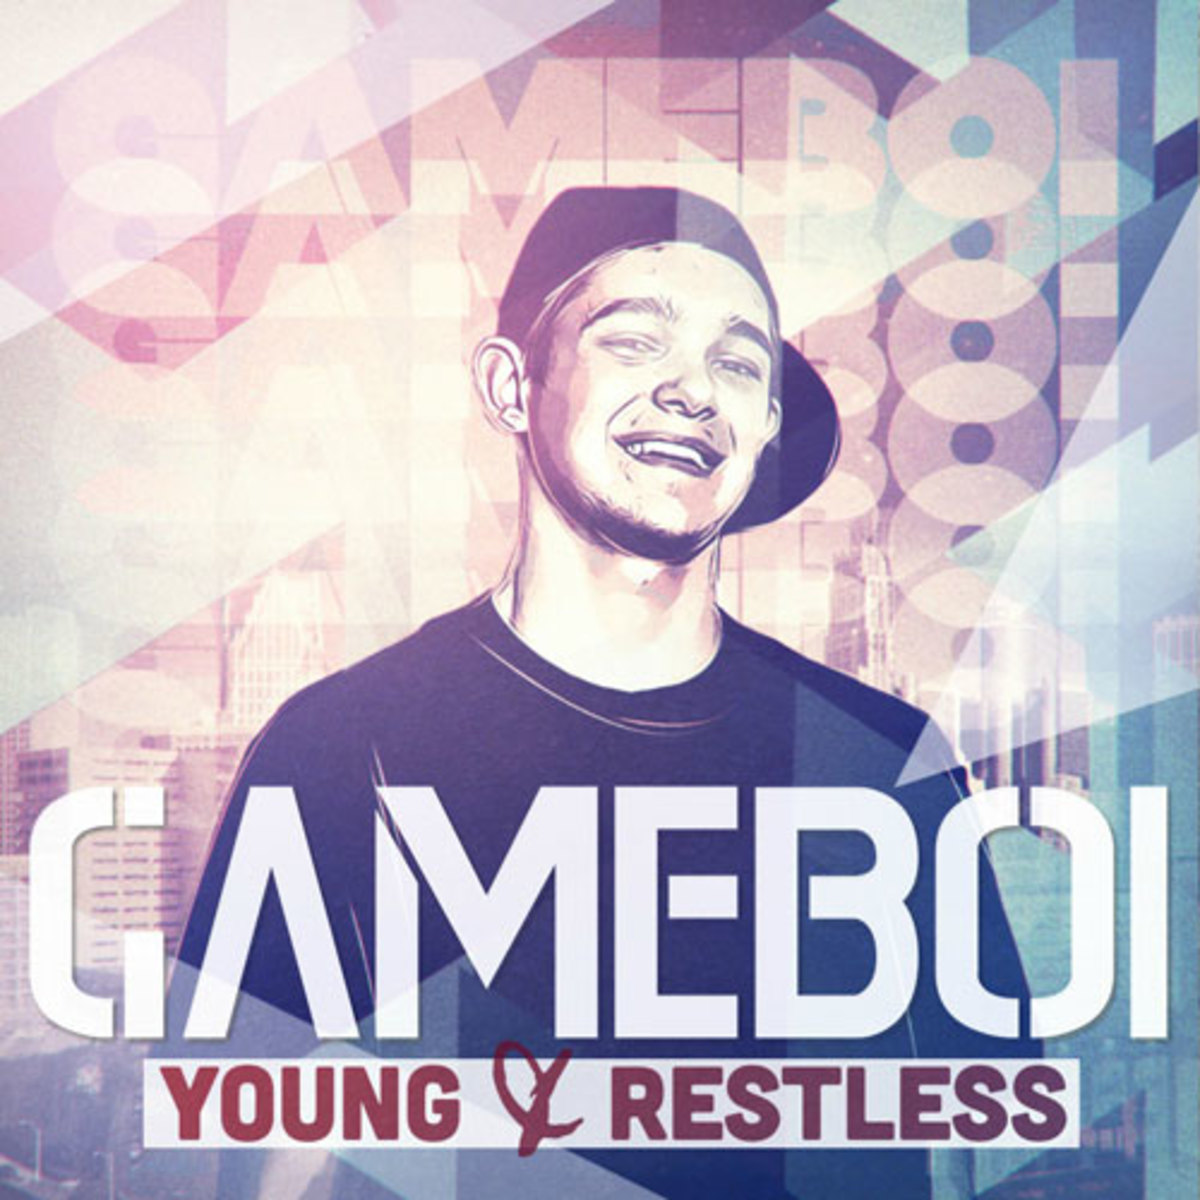 gameboi-youngandrestless.jpg